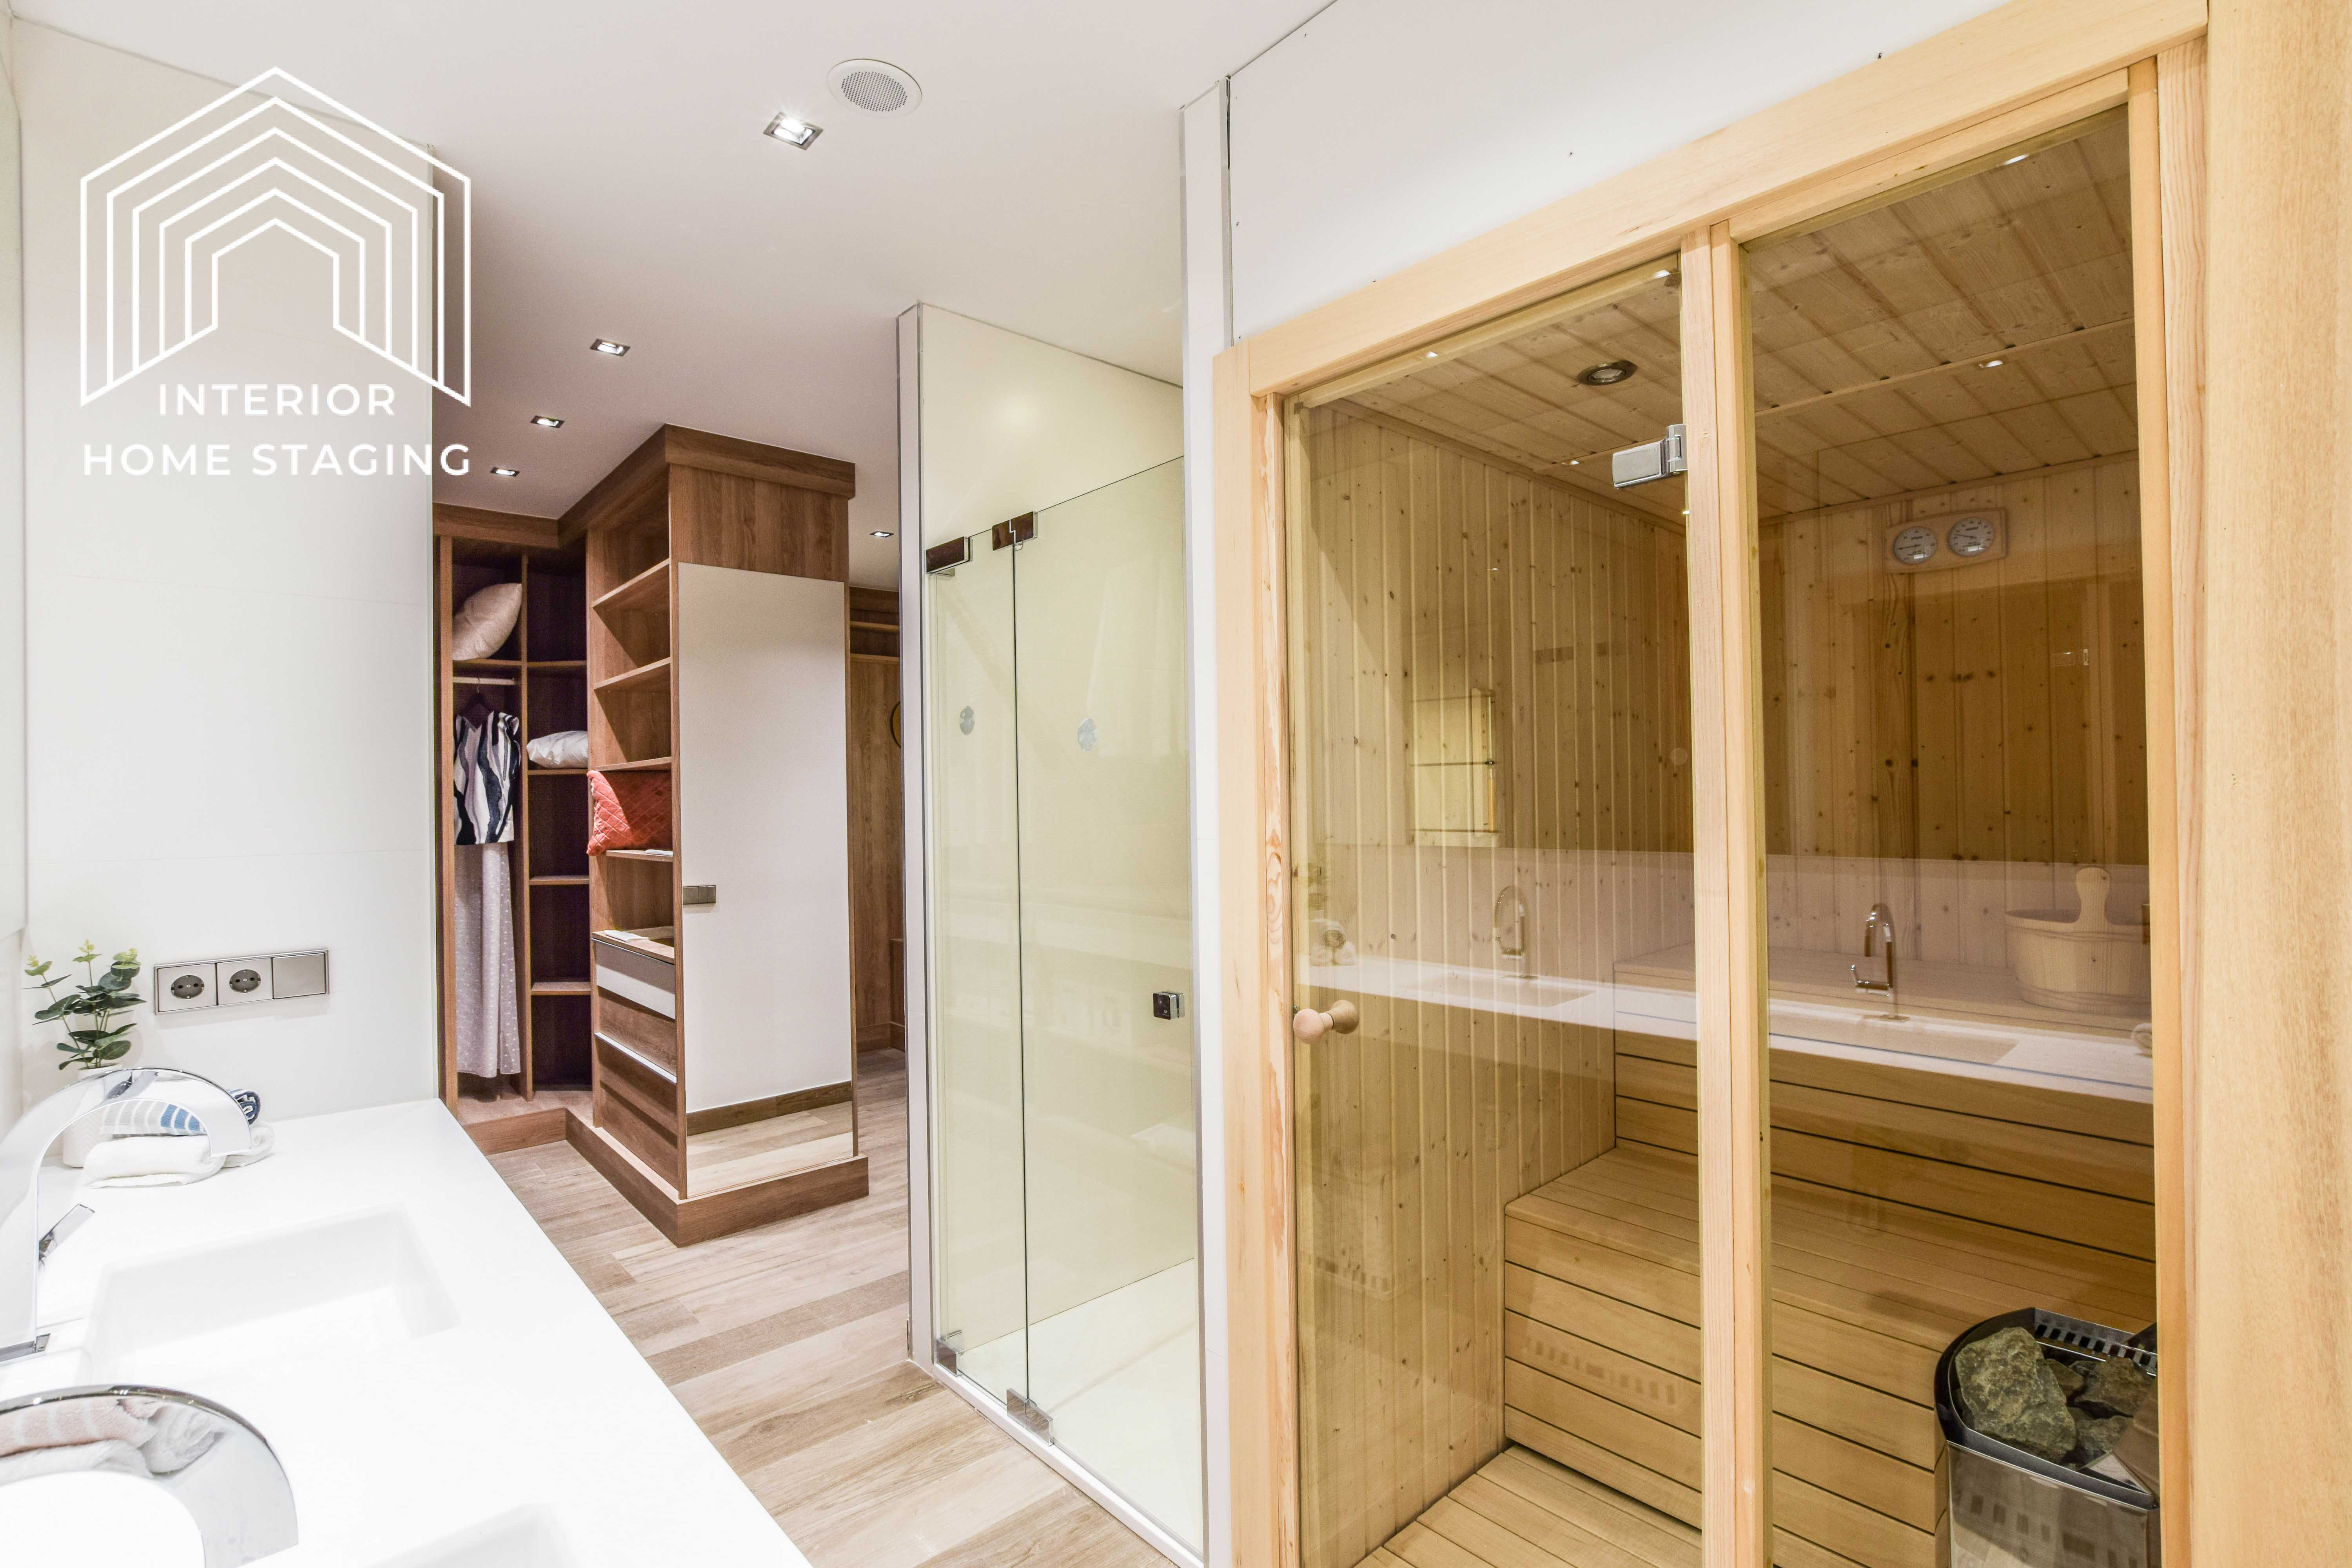 Interior Home Staging jacuzzi baño 4